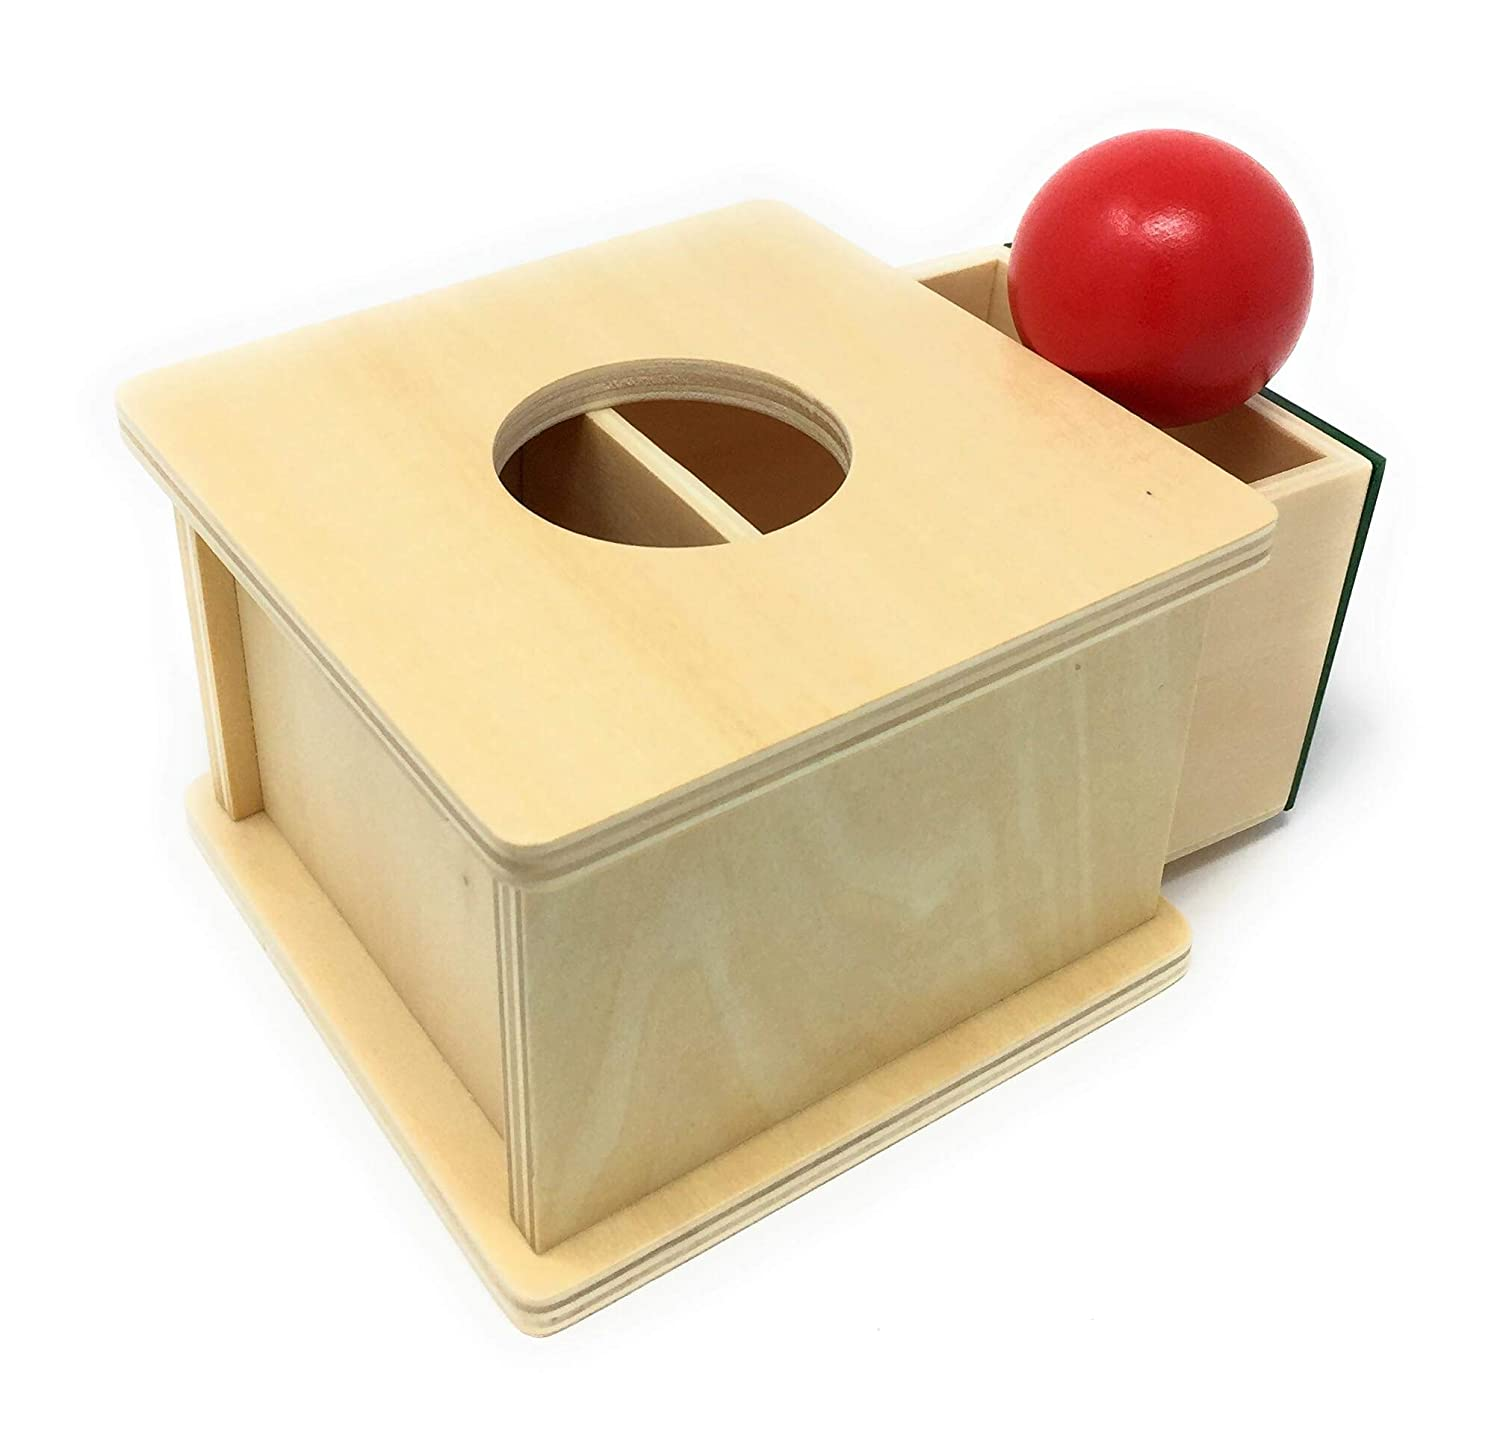 Ball Box Toy for Toddlers and Babies SI Montessori Toys for Baby 3 and 4 Year Olds Comes with 1 Red Ball Perfect for 2 Object Permanence Box for Infant